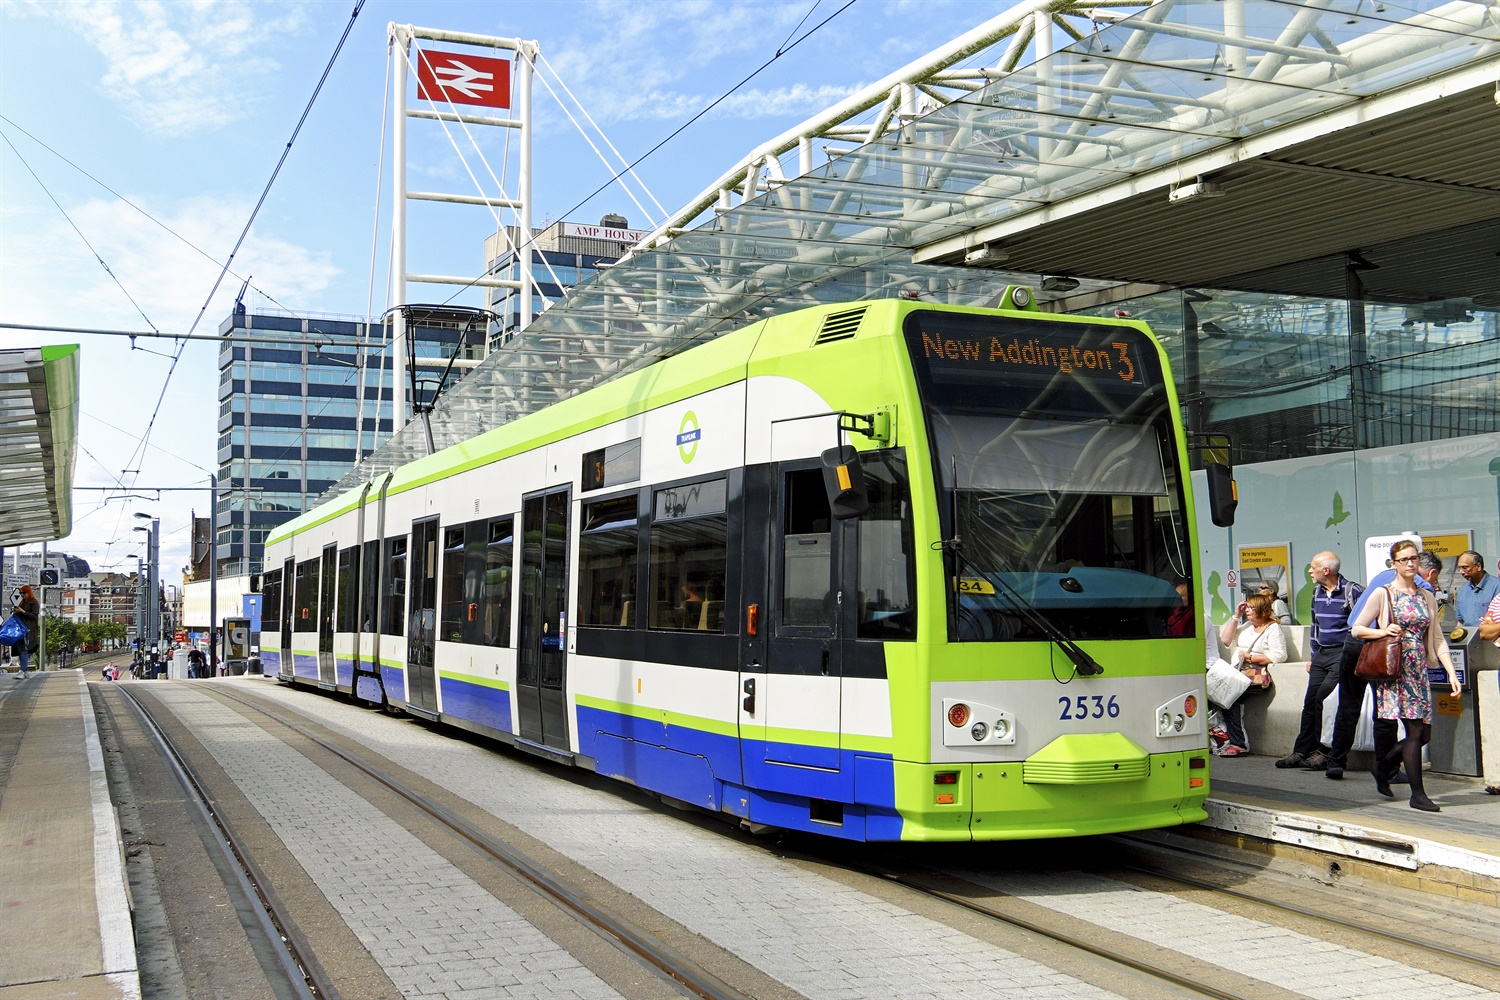 London trams to be fitted with automatic braking system in response to Sandilands recommendations